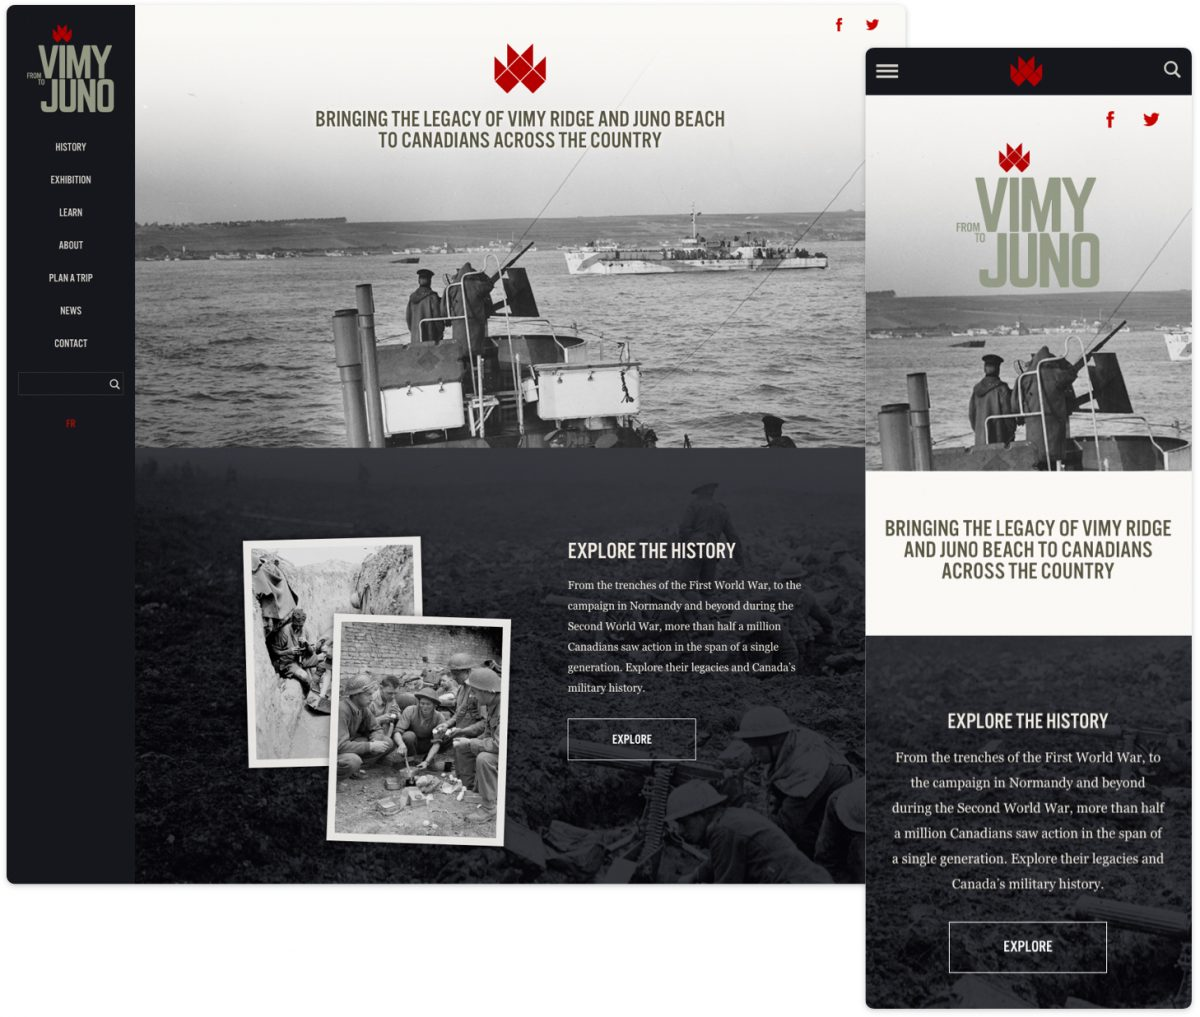 From Vimy to Juno displaying flexible images on desktop versus mobile.